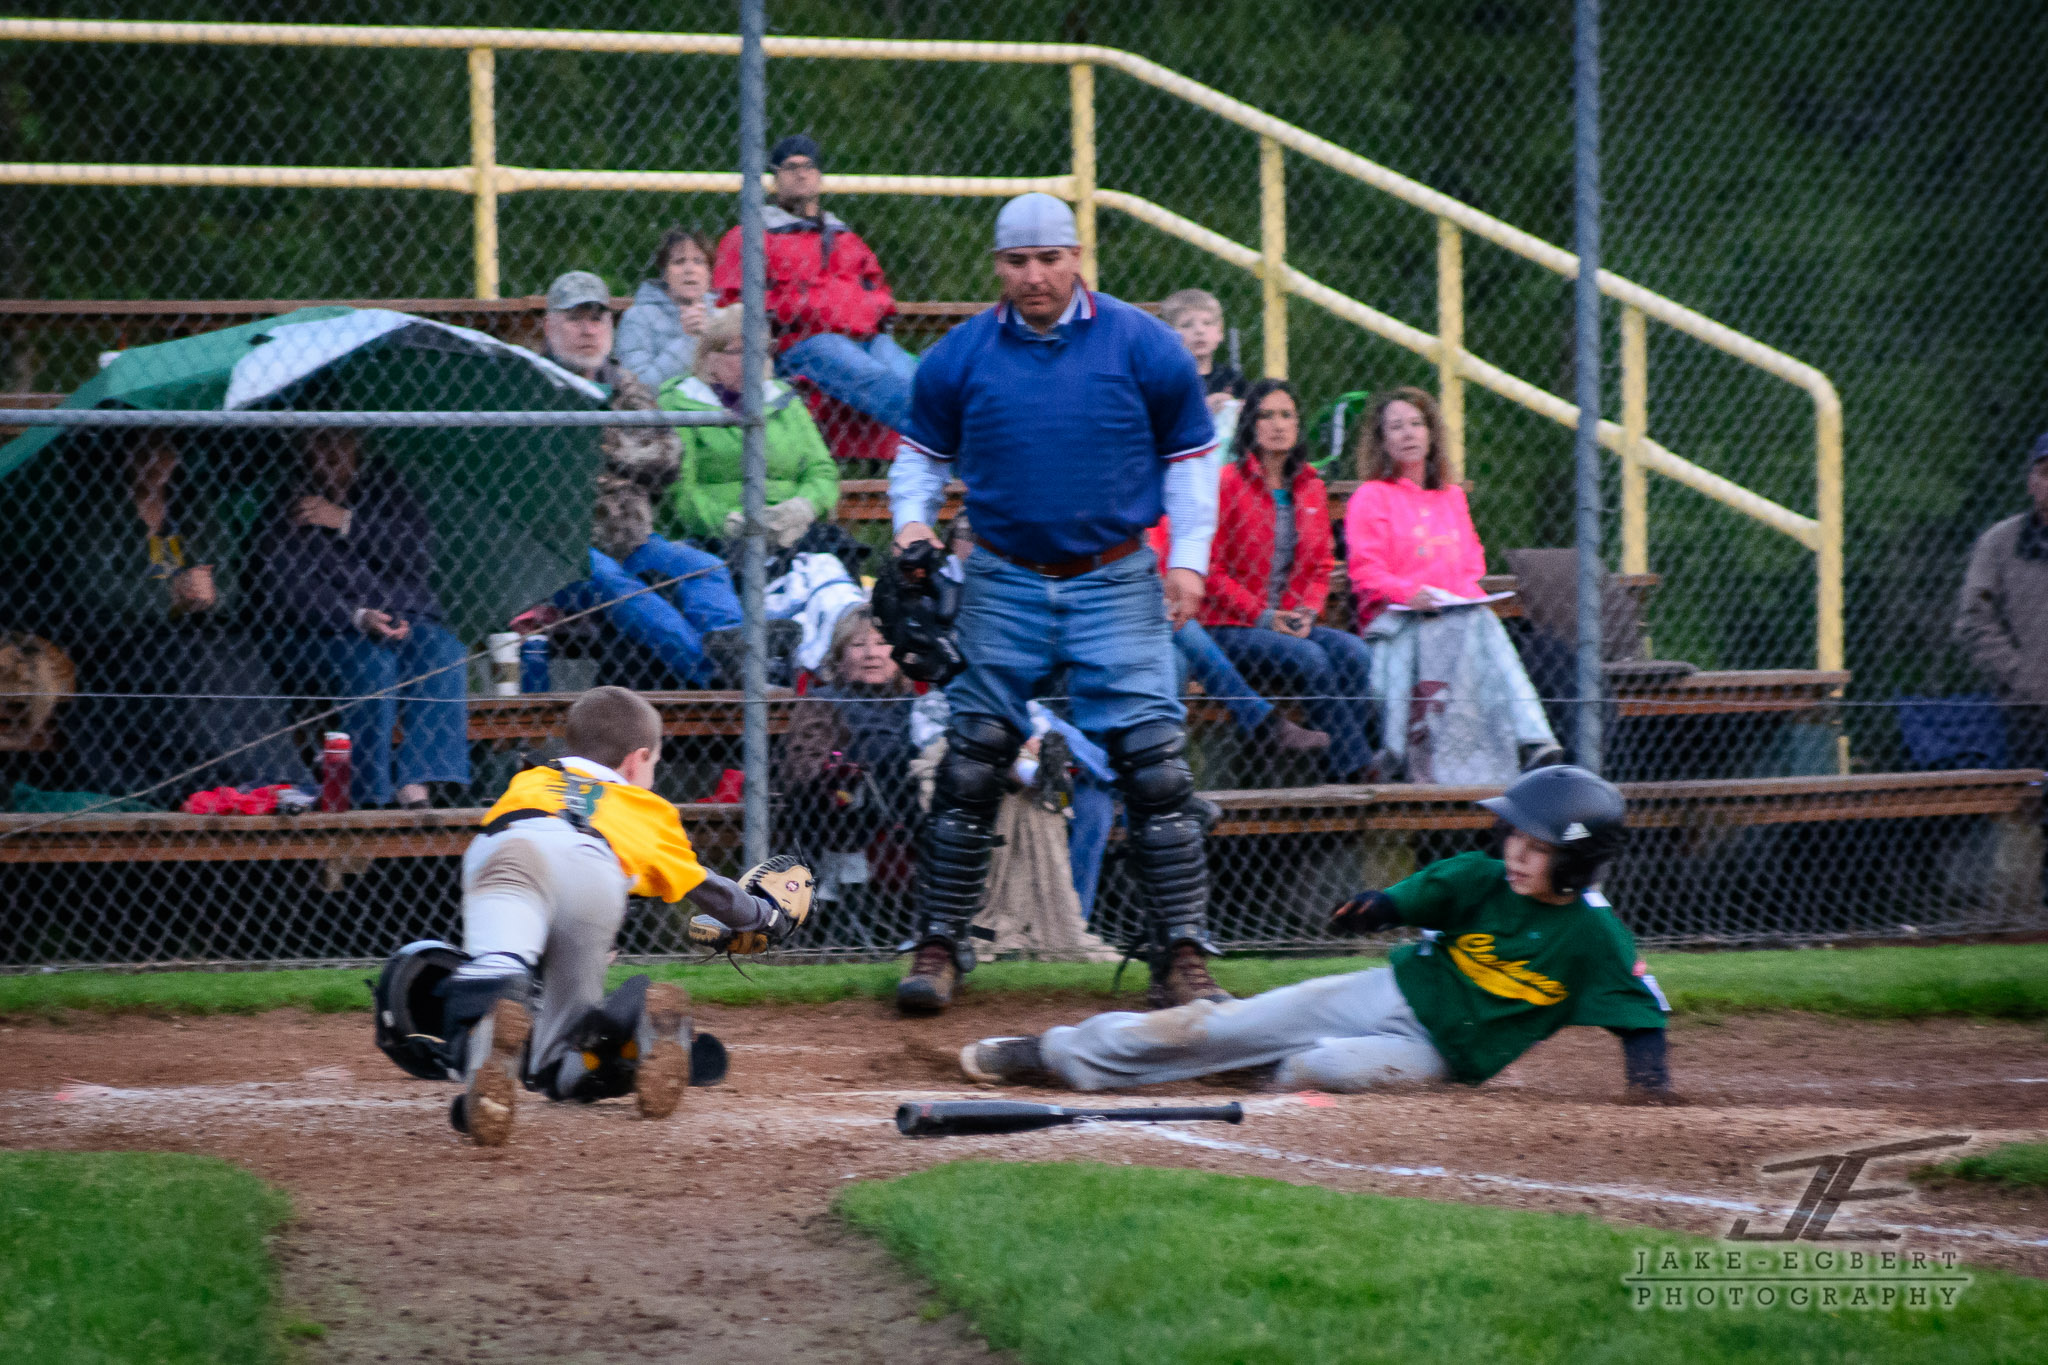 1st baseman launched it home to try and prevent O. from scoring.